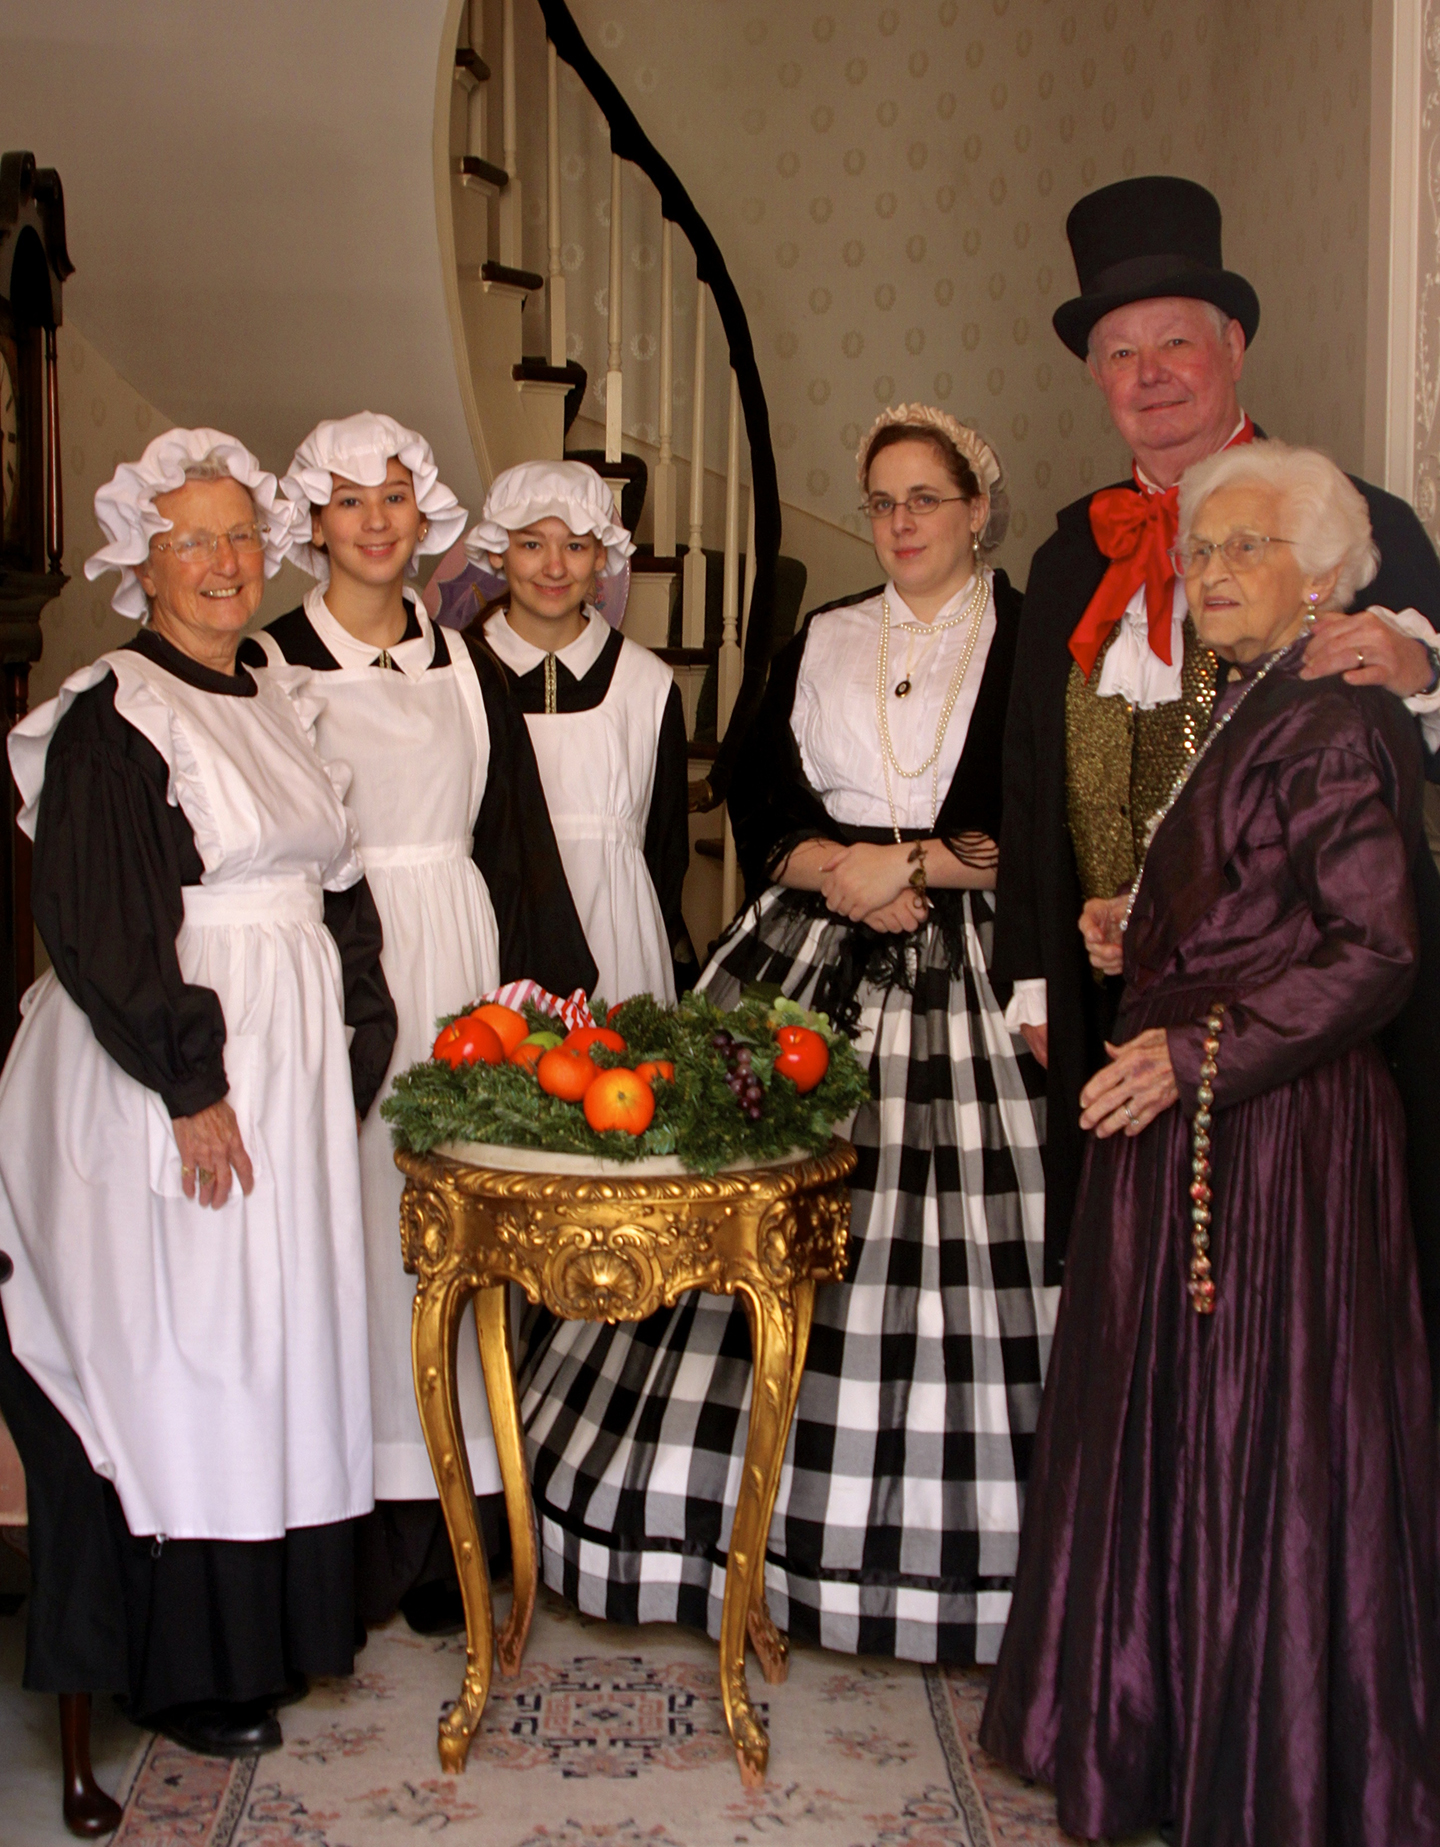 Historic characters at the Spring Fiesta House (photo courtesey of Friends of the Cabildo)